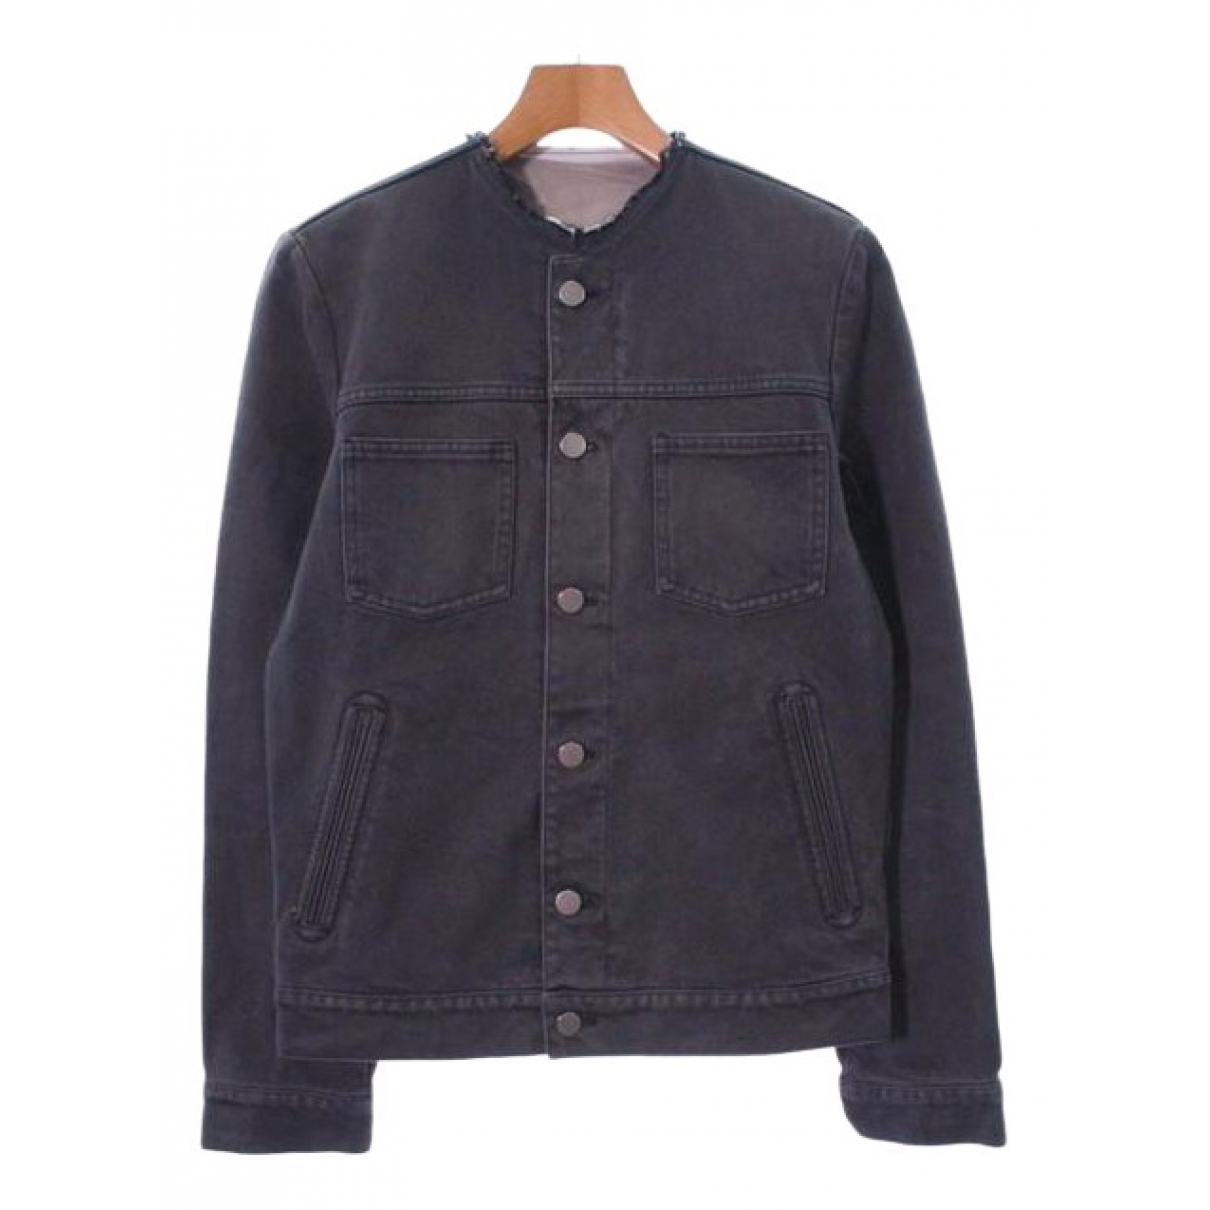 Louis Vuitton \N Grey Denim - Jeans jacket  for Men 46 FR